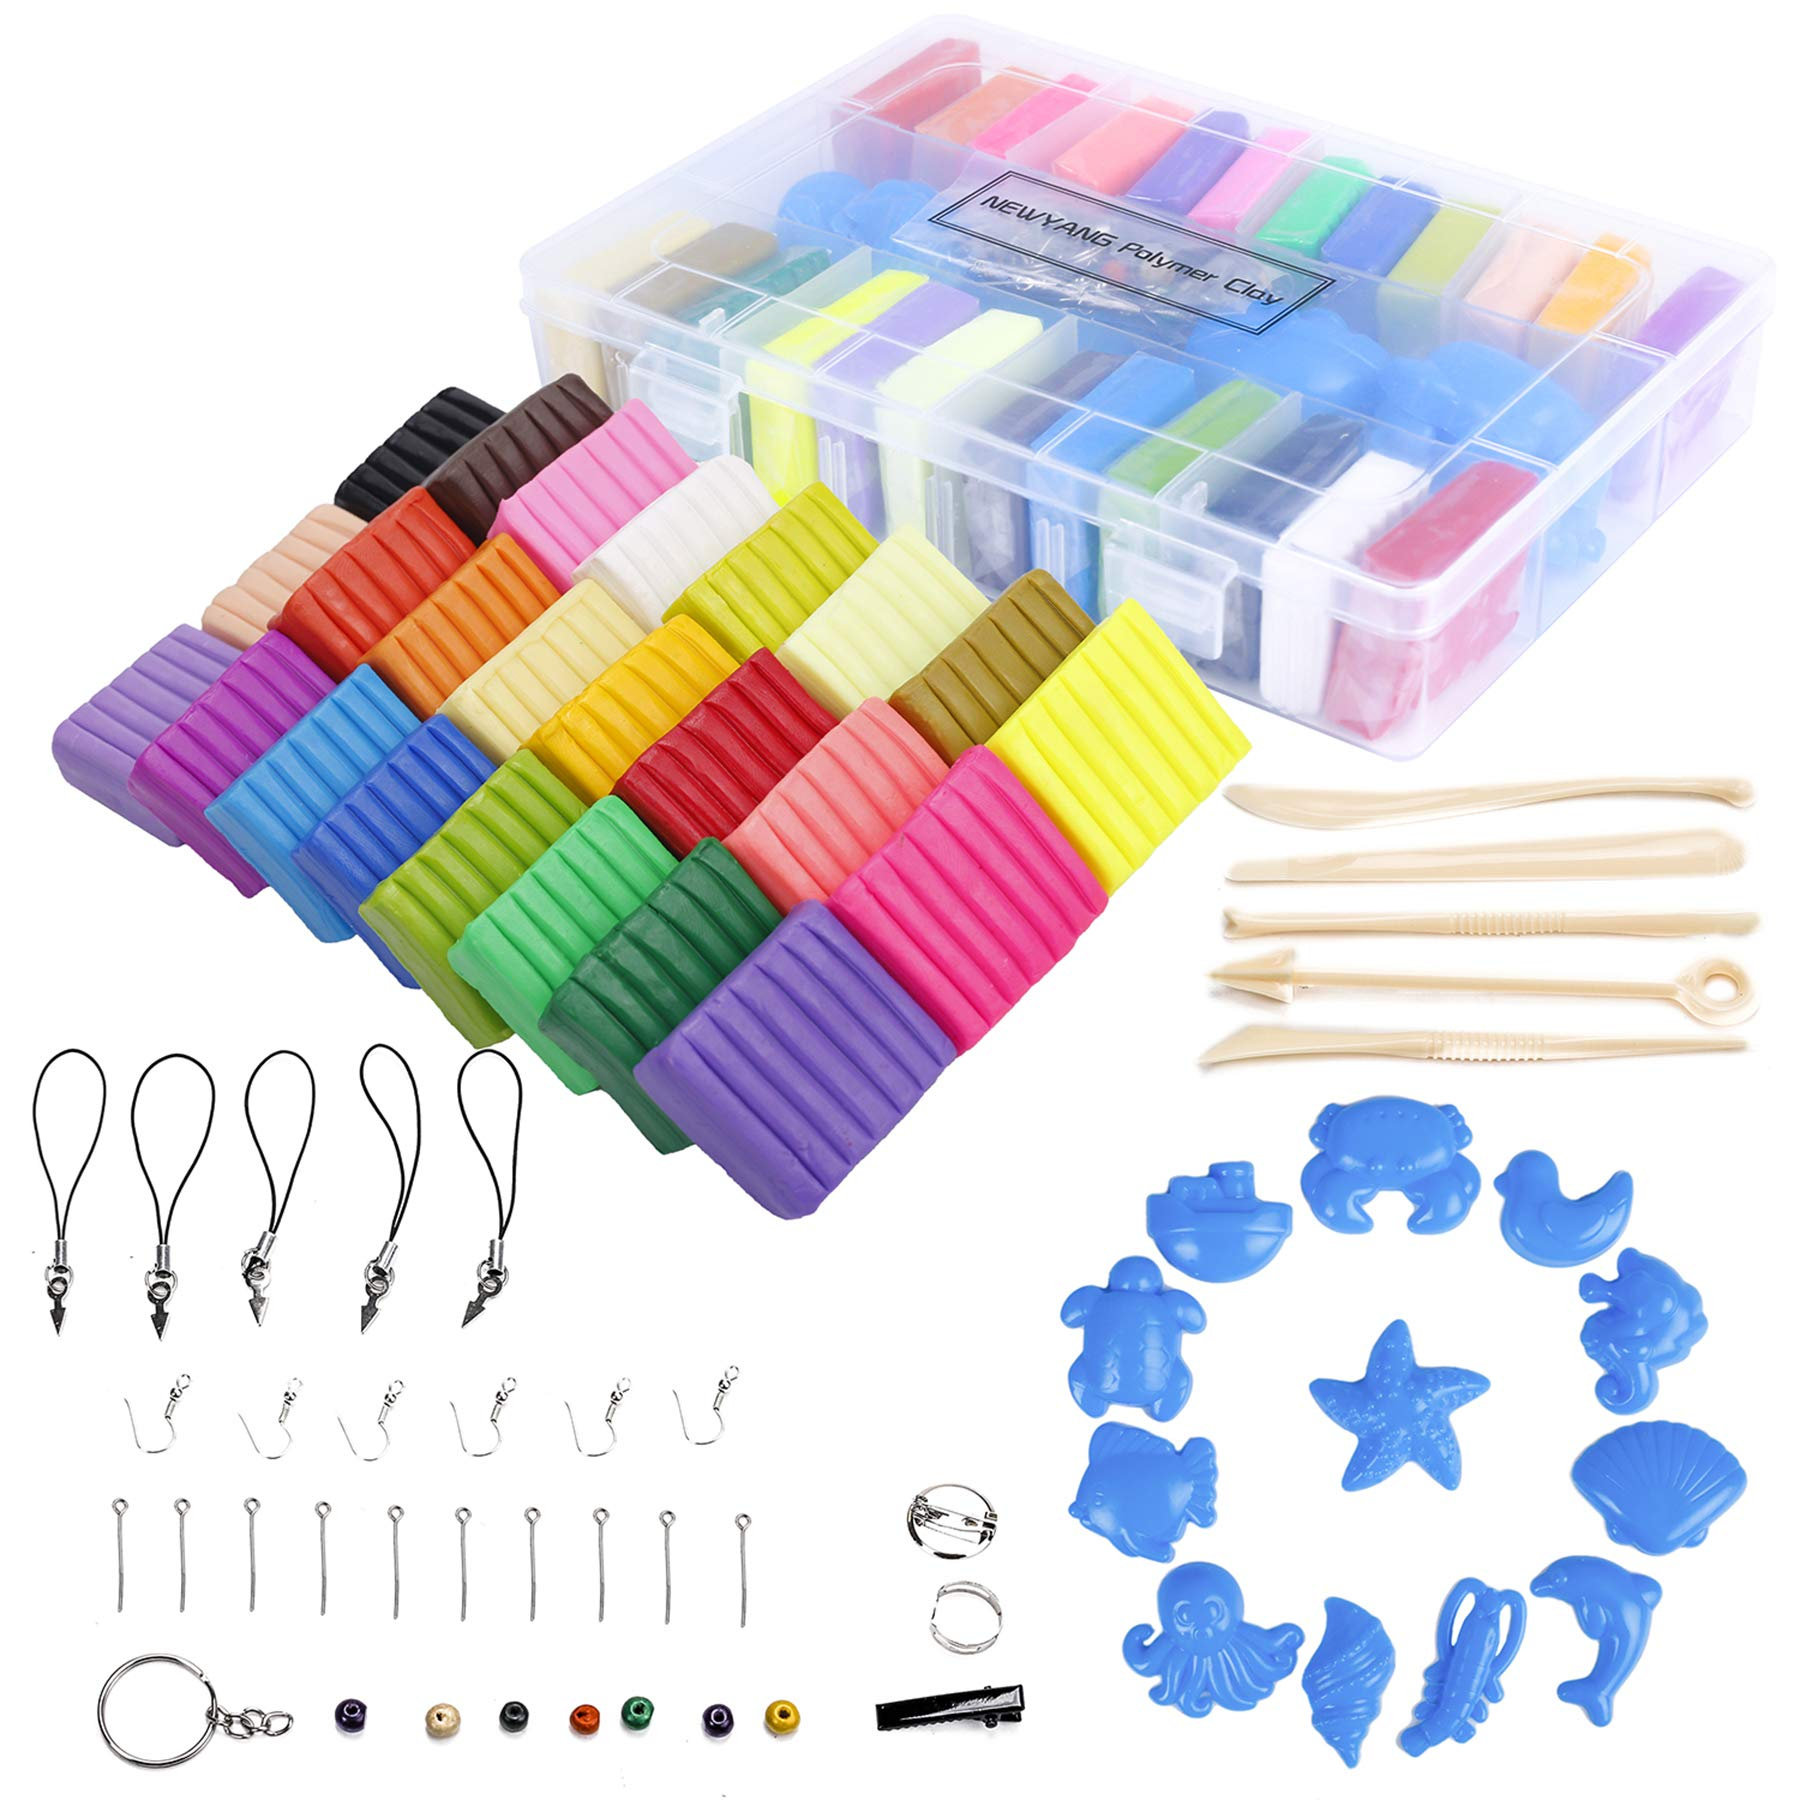 50 Colors Oven Bake Clay with 5 pcs Modeling Tools, YILAIDA Polymer Clay